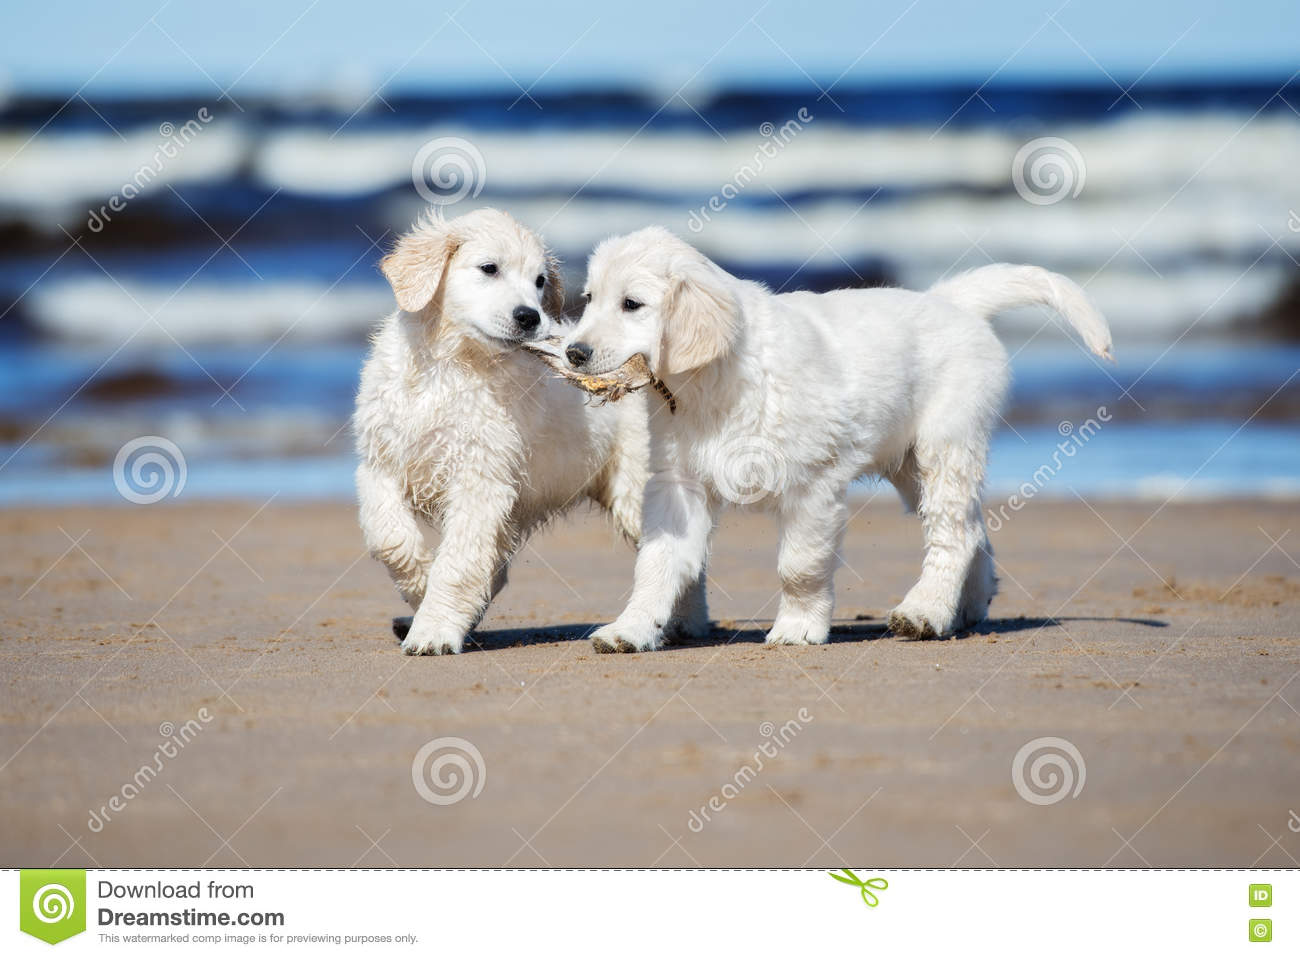 Two Golden Retriever Puppies On A Beach Stock Photo Image Of Active Holding 70245680